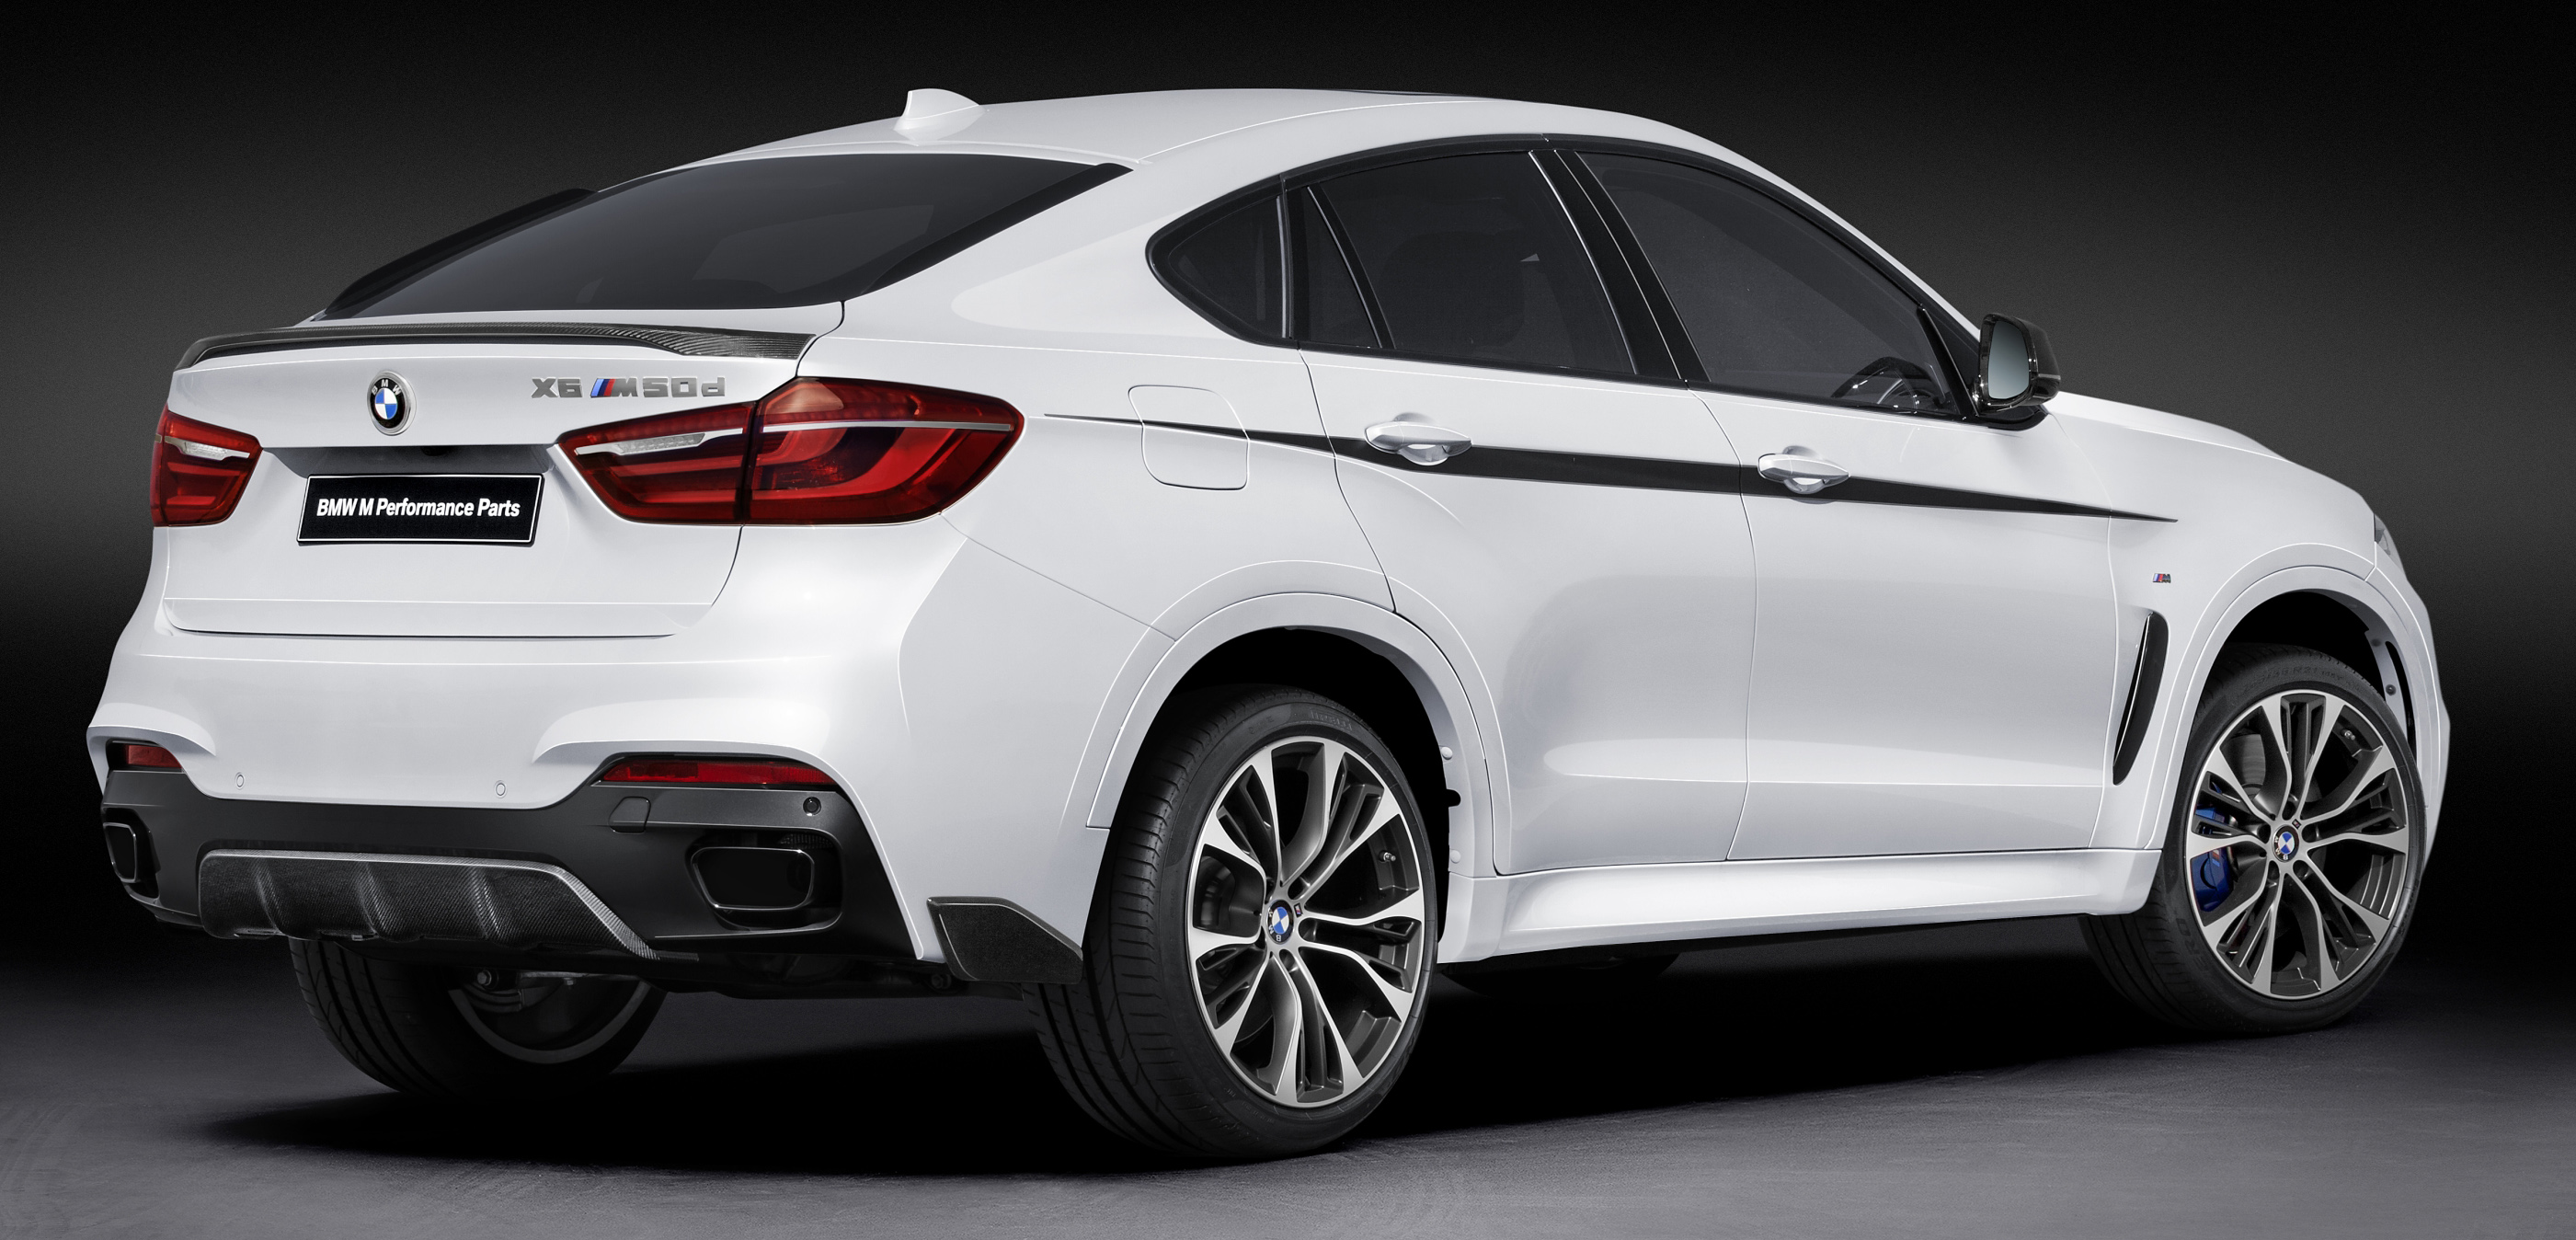 Bmw X6 F16 2014 2016 Performance Aero Pack Upgrade Body